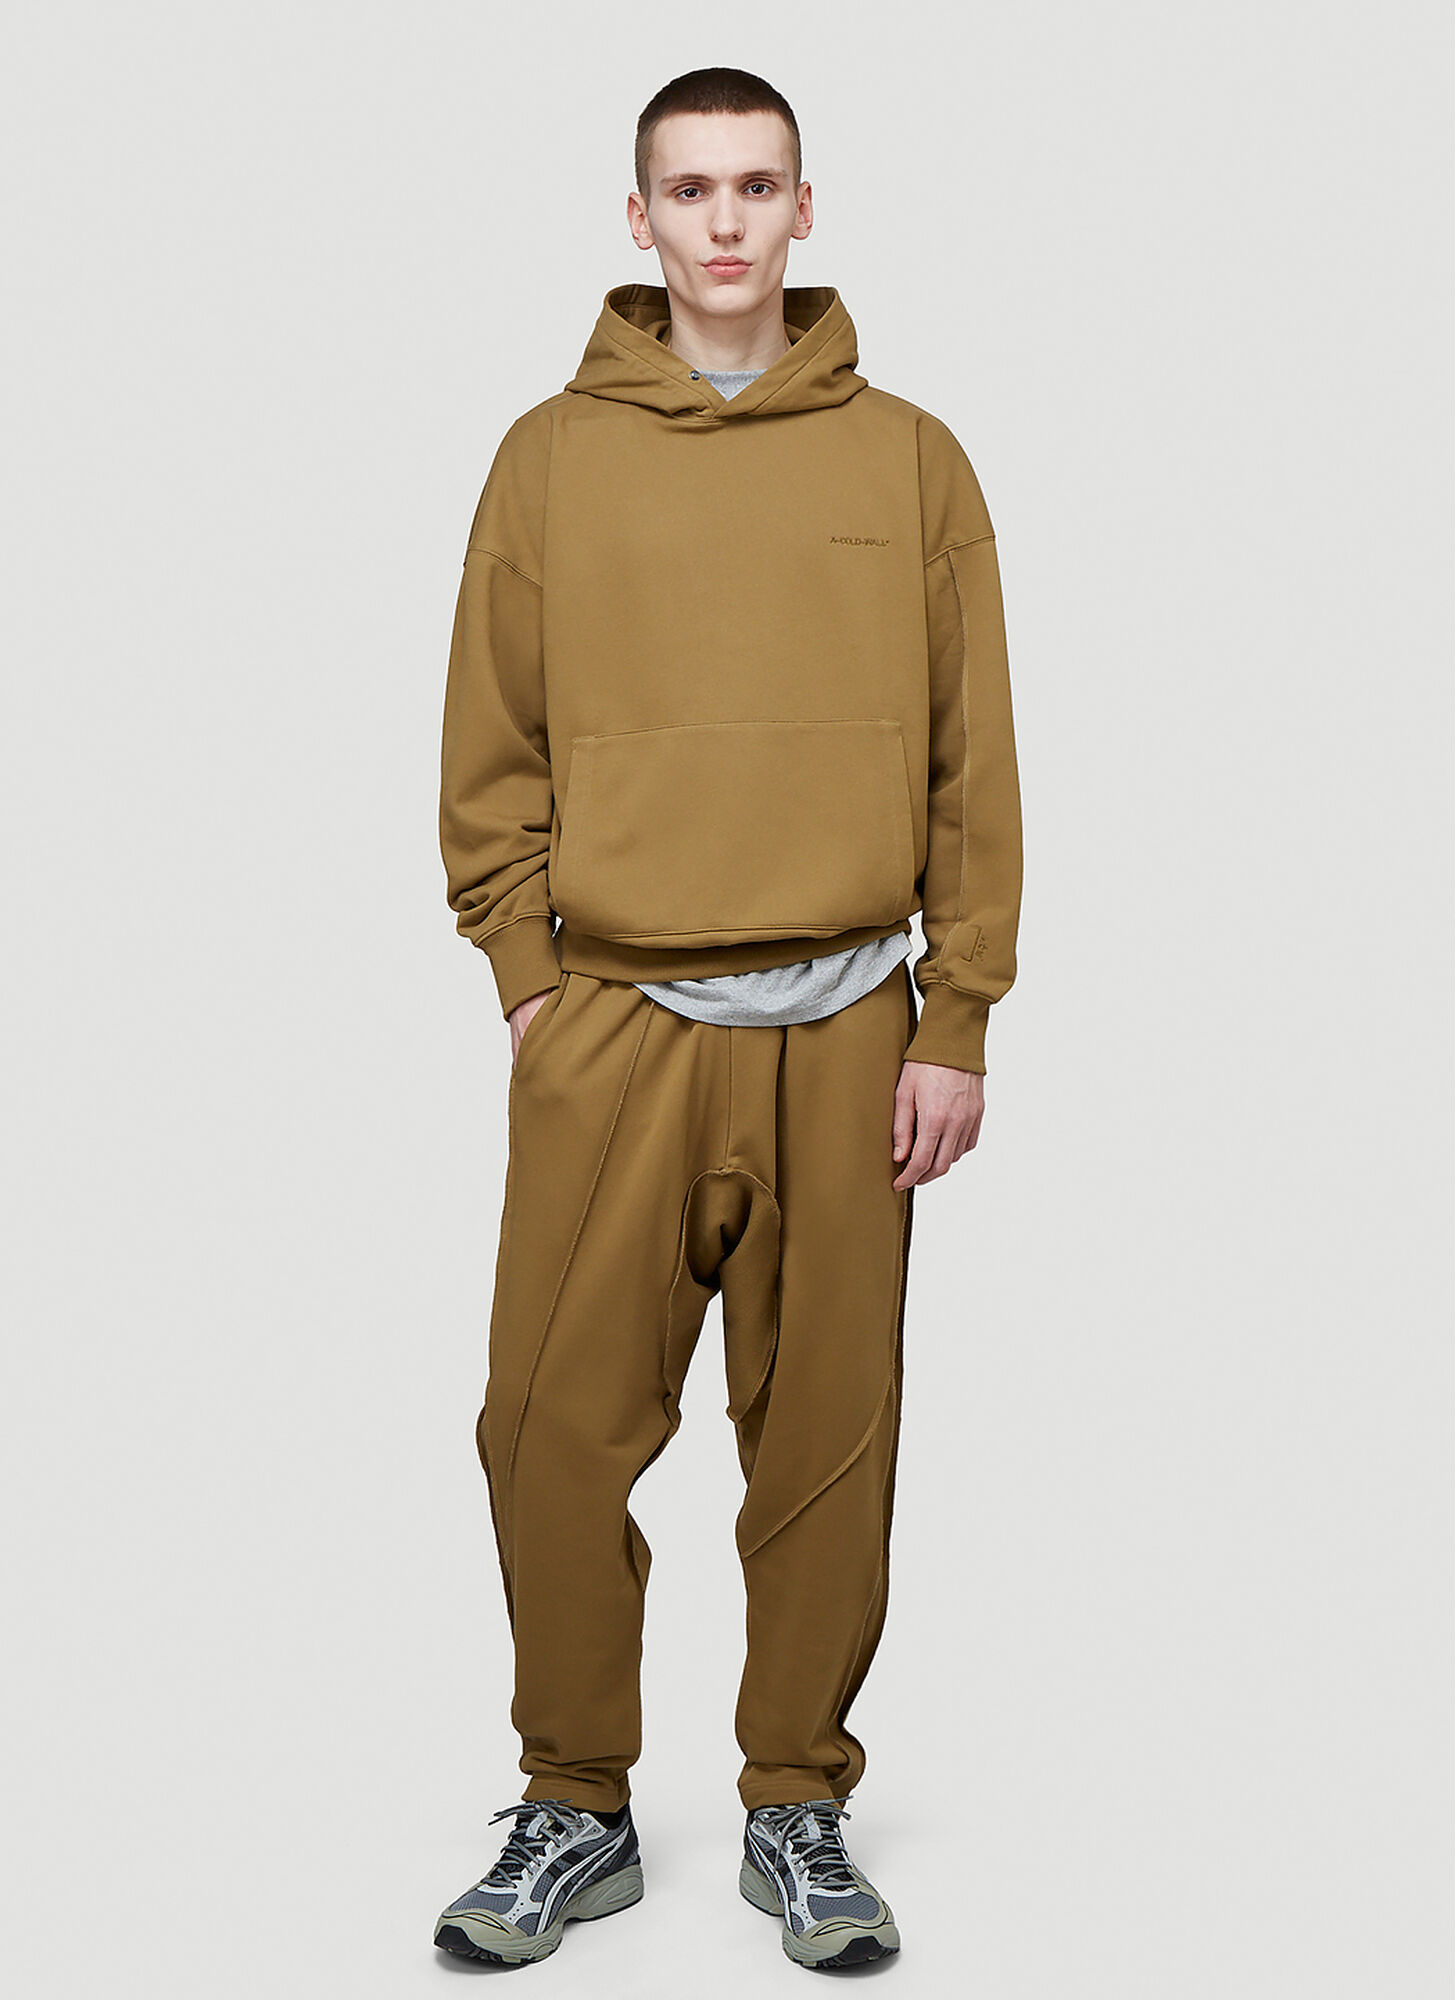 A-COLD-WALL* Dissection Track Pants